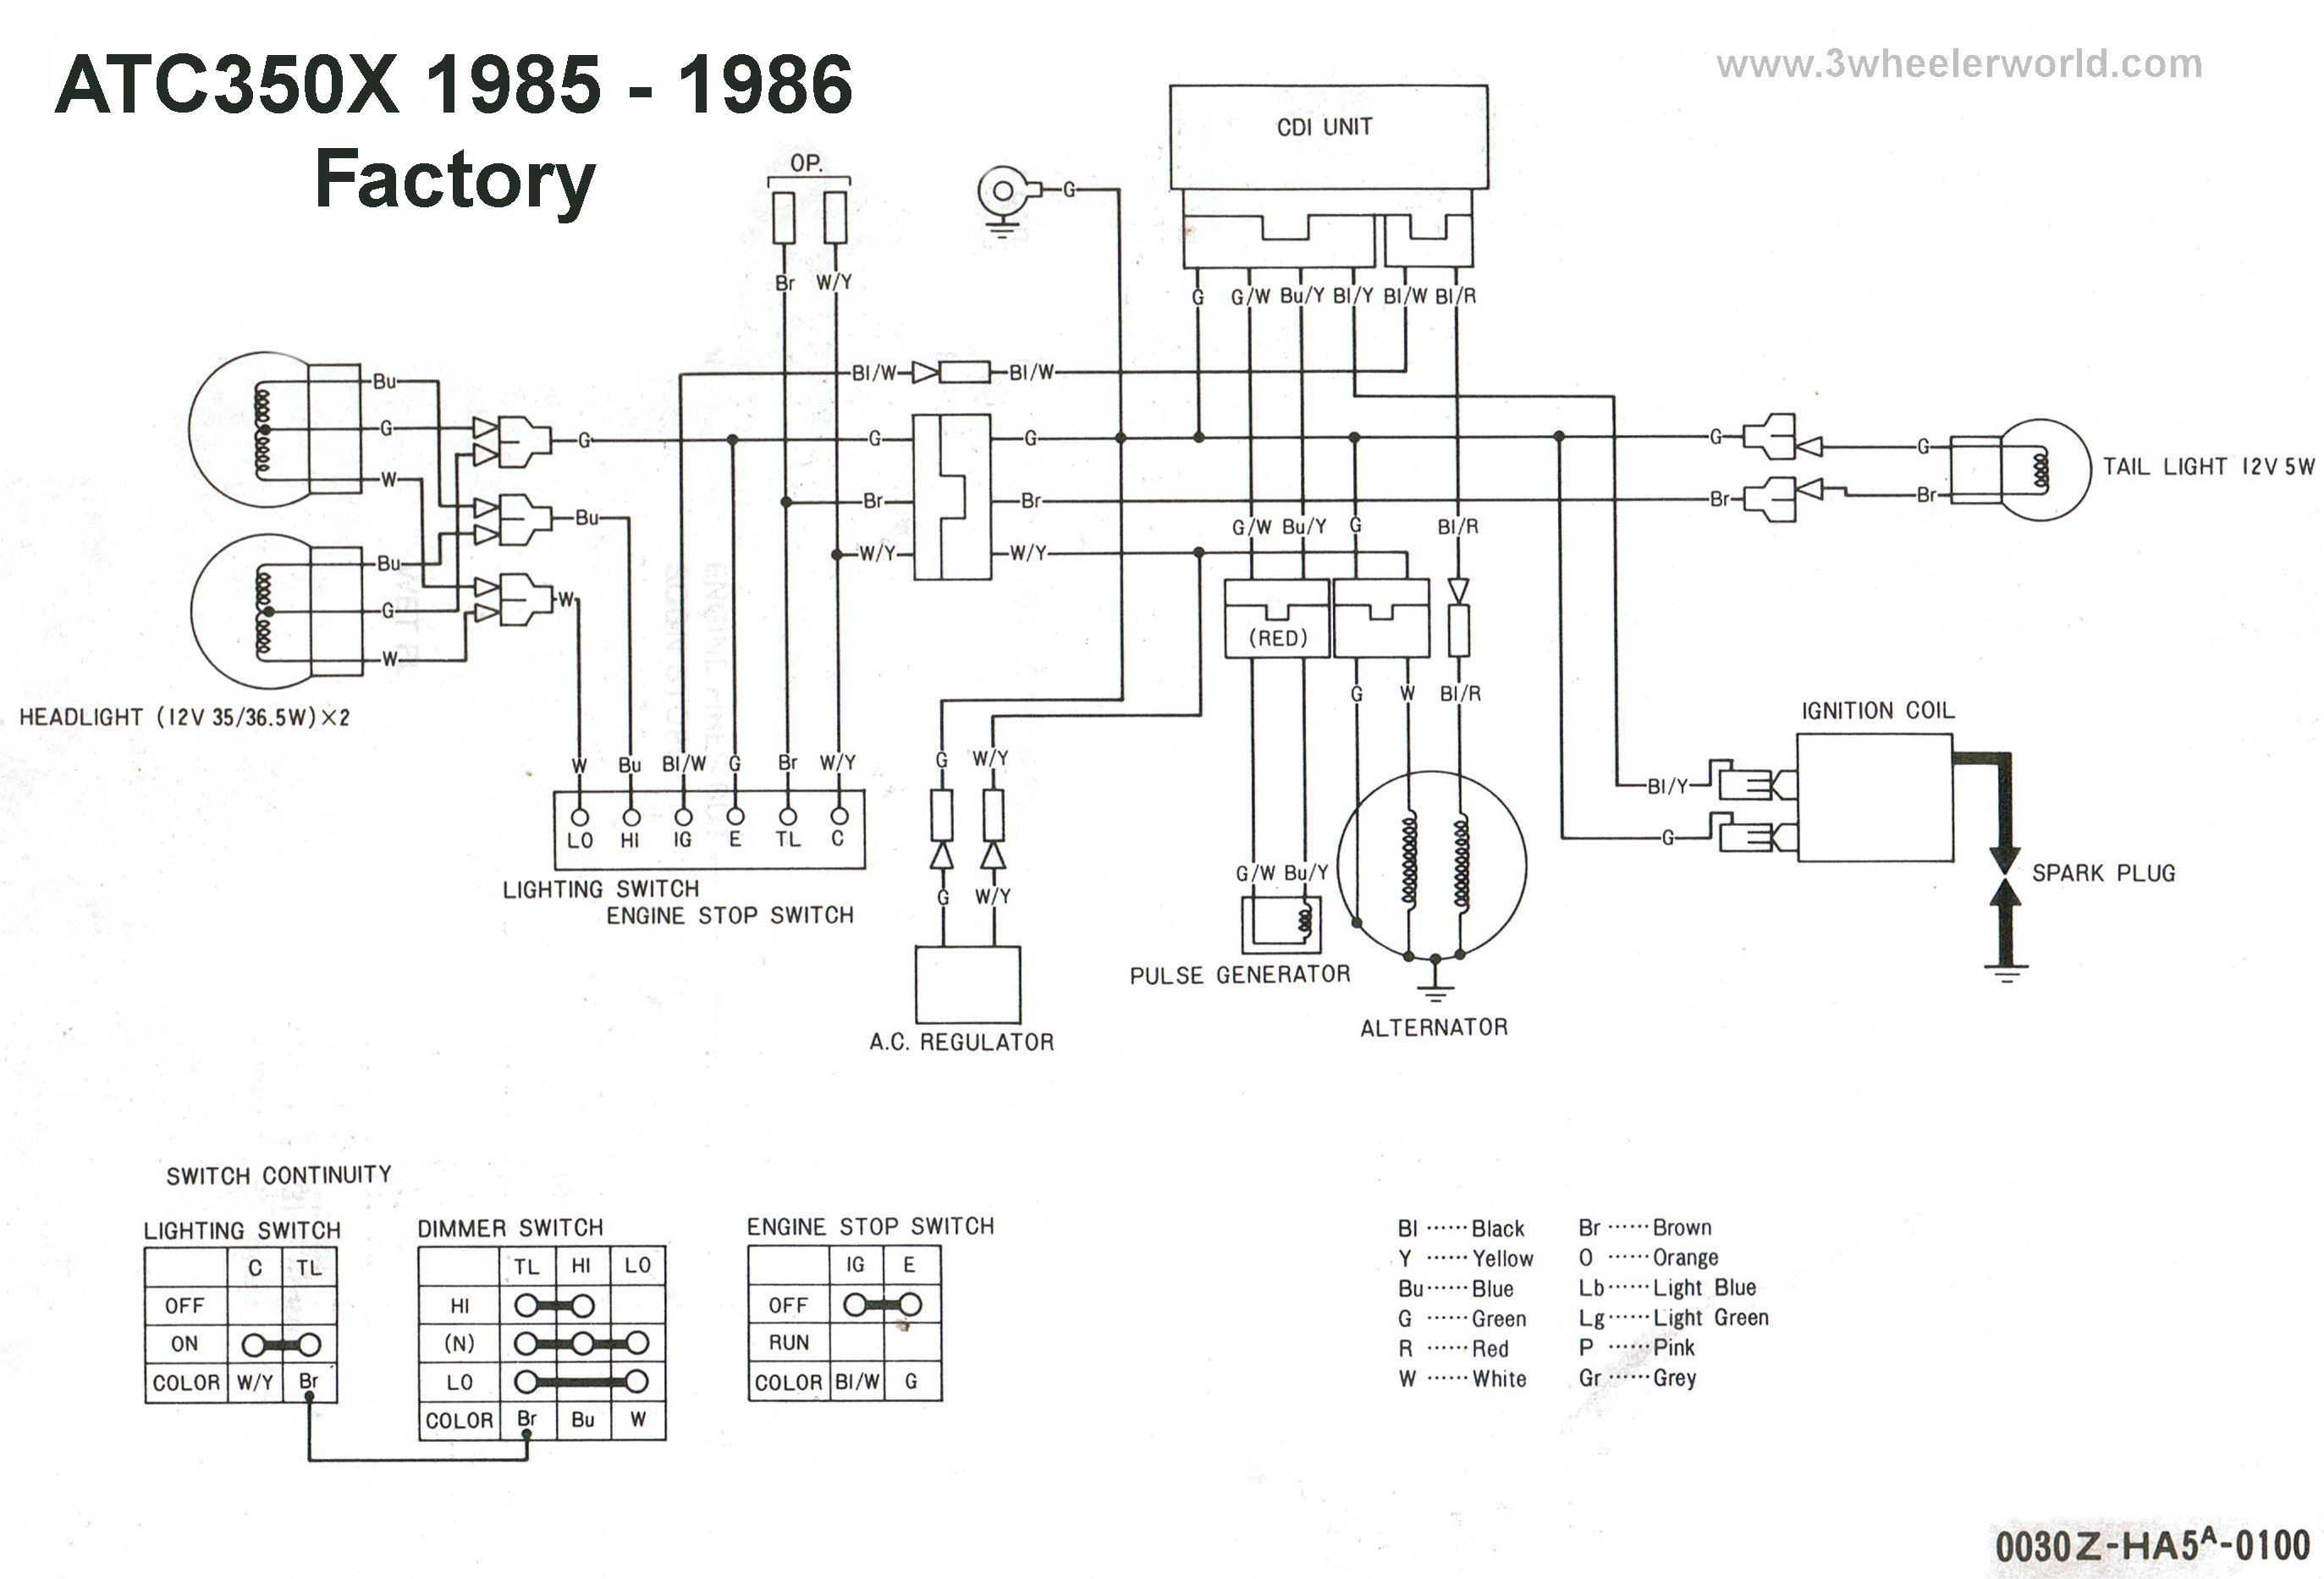 ATC350Xx85Thru86 honda 250x wiring diagram on honda download wirning diagrams 1987 lt250r wiring diagram at n-0.co